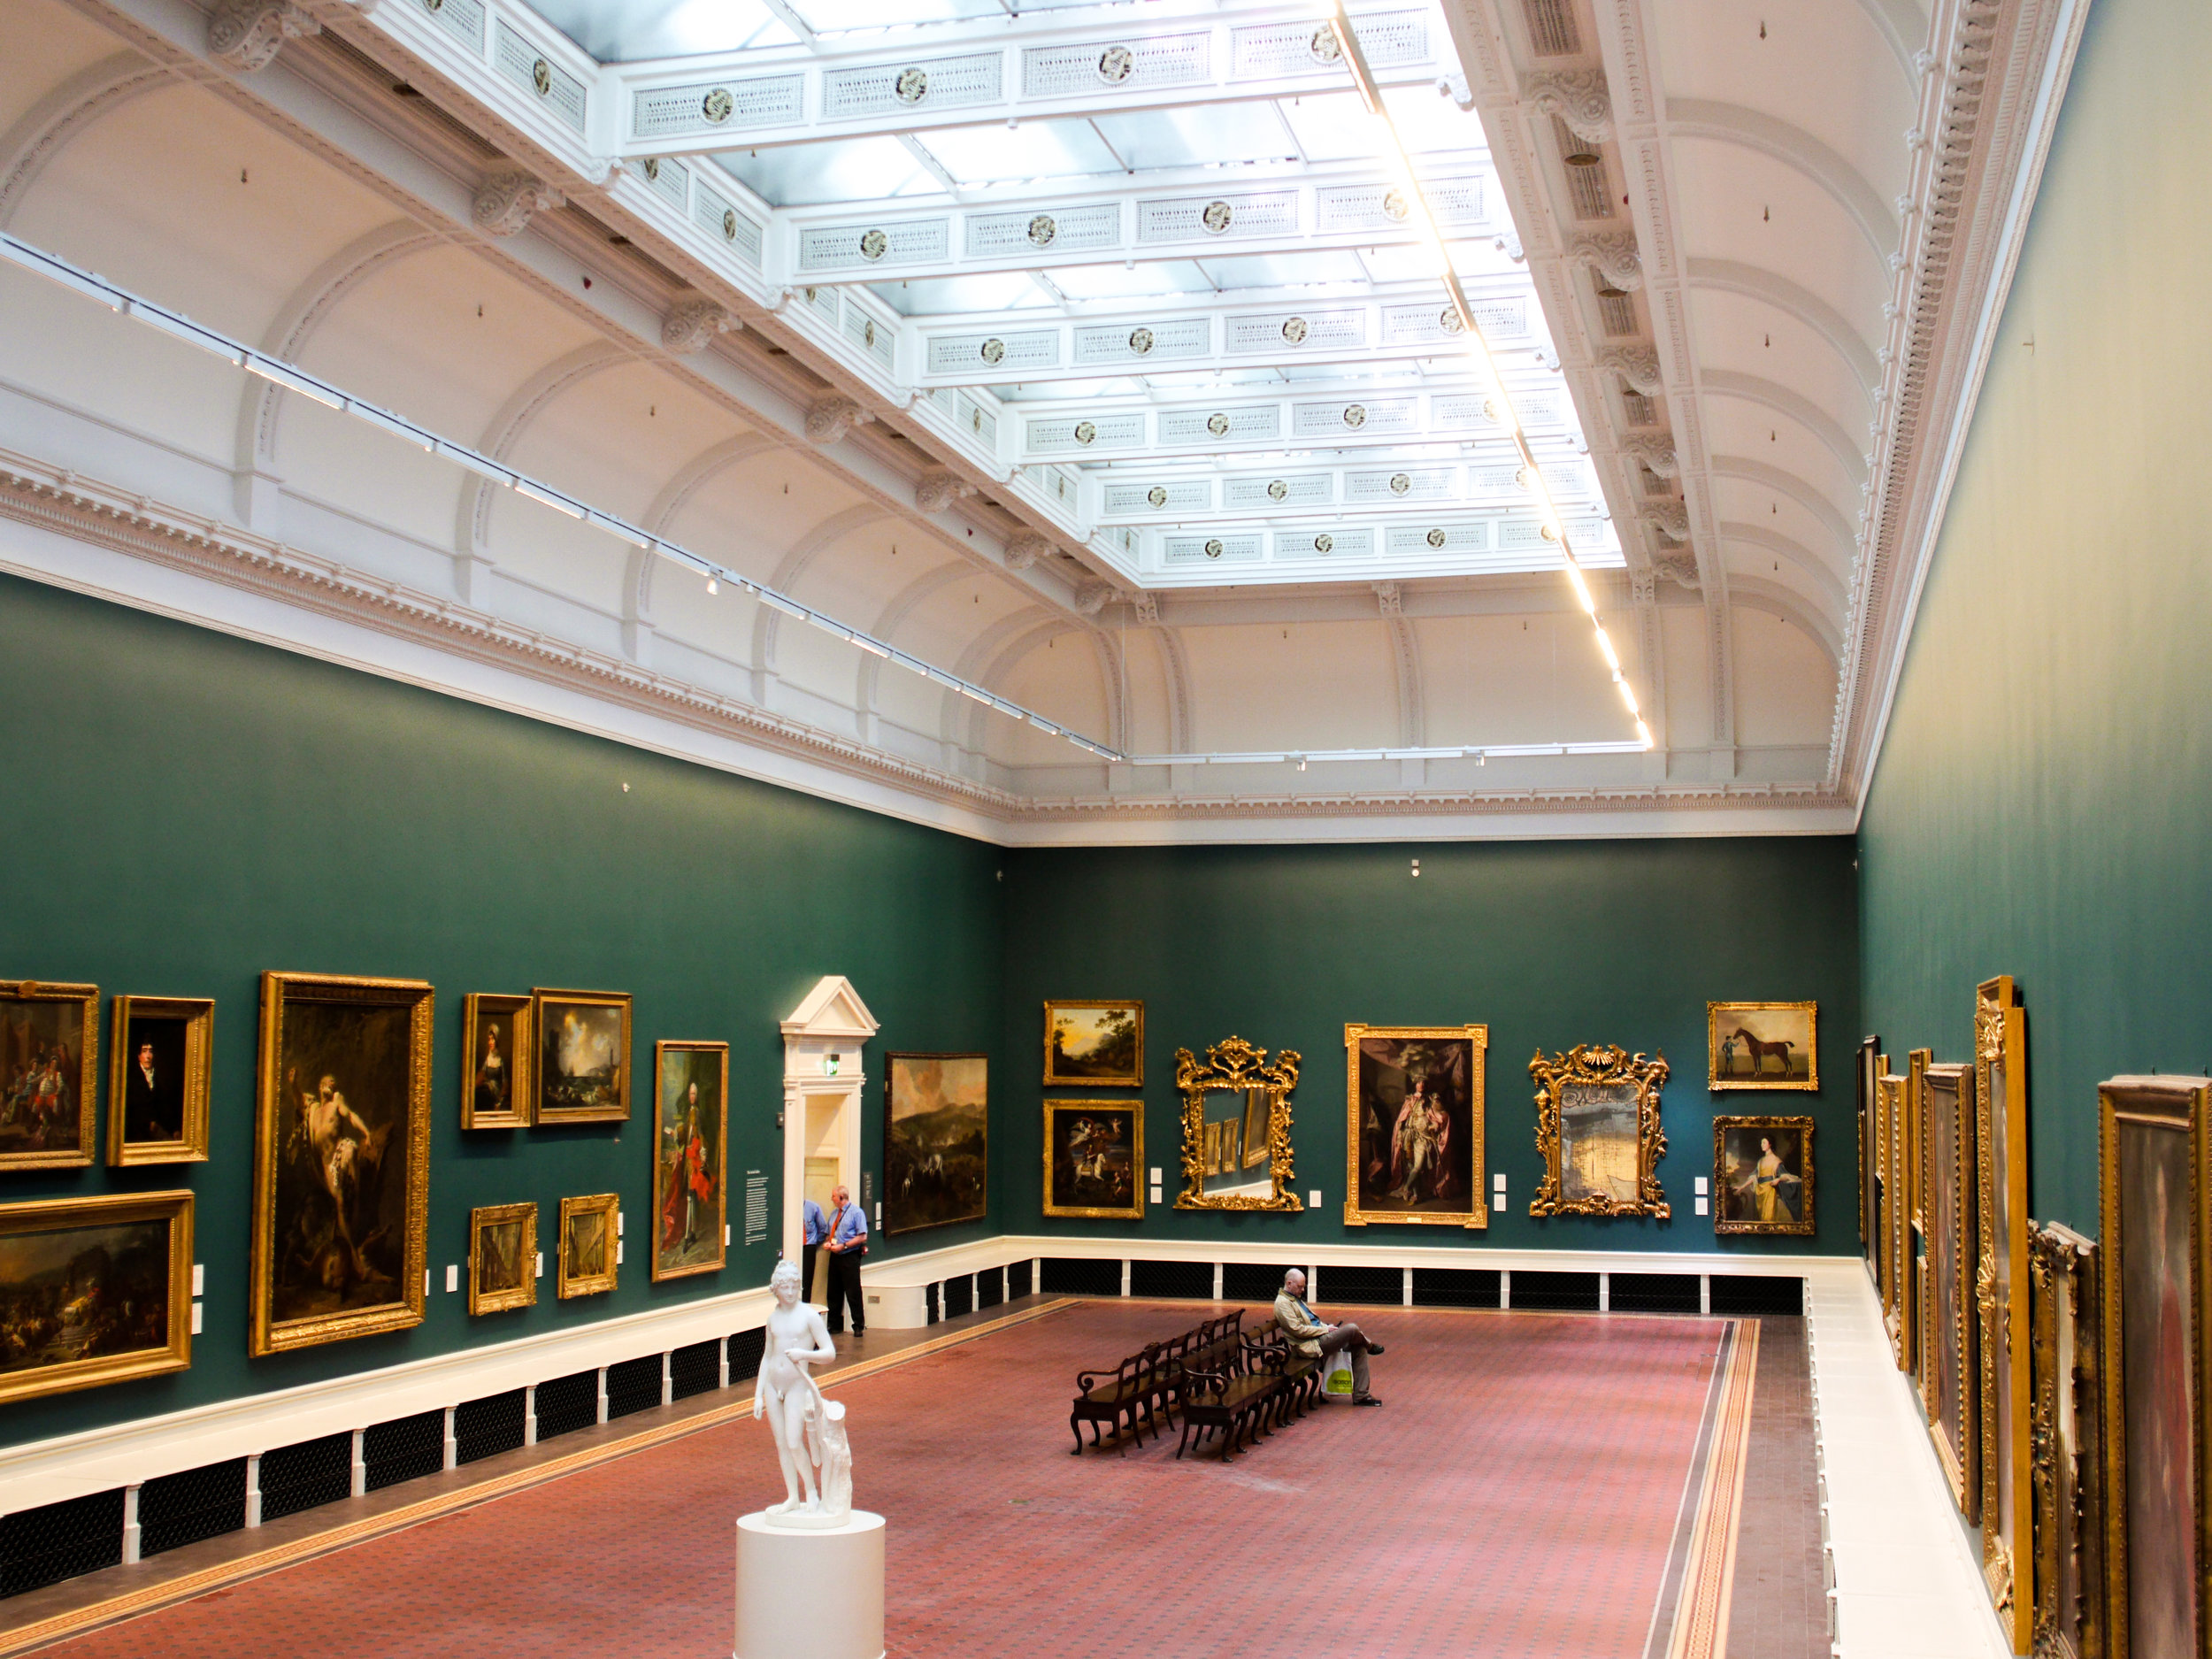 Grand Gallery room in the National Gallery of Ireland